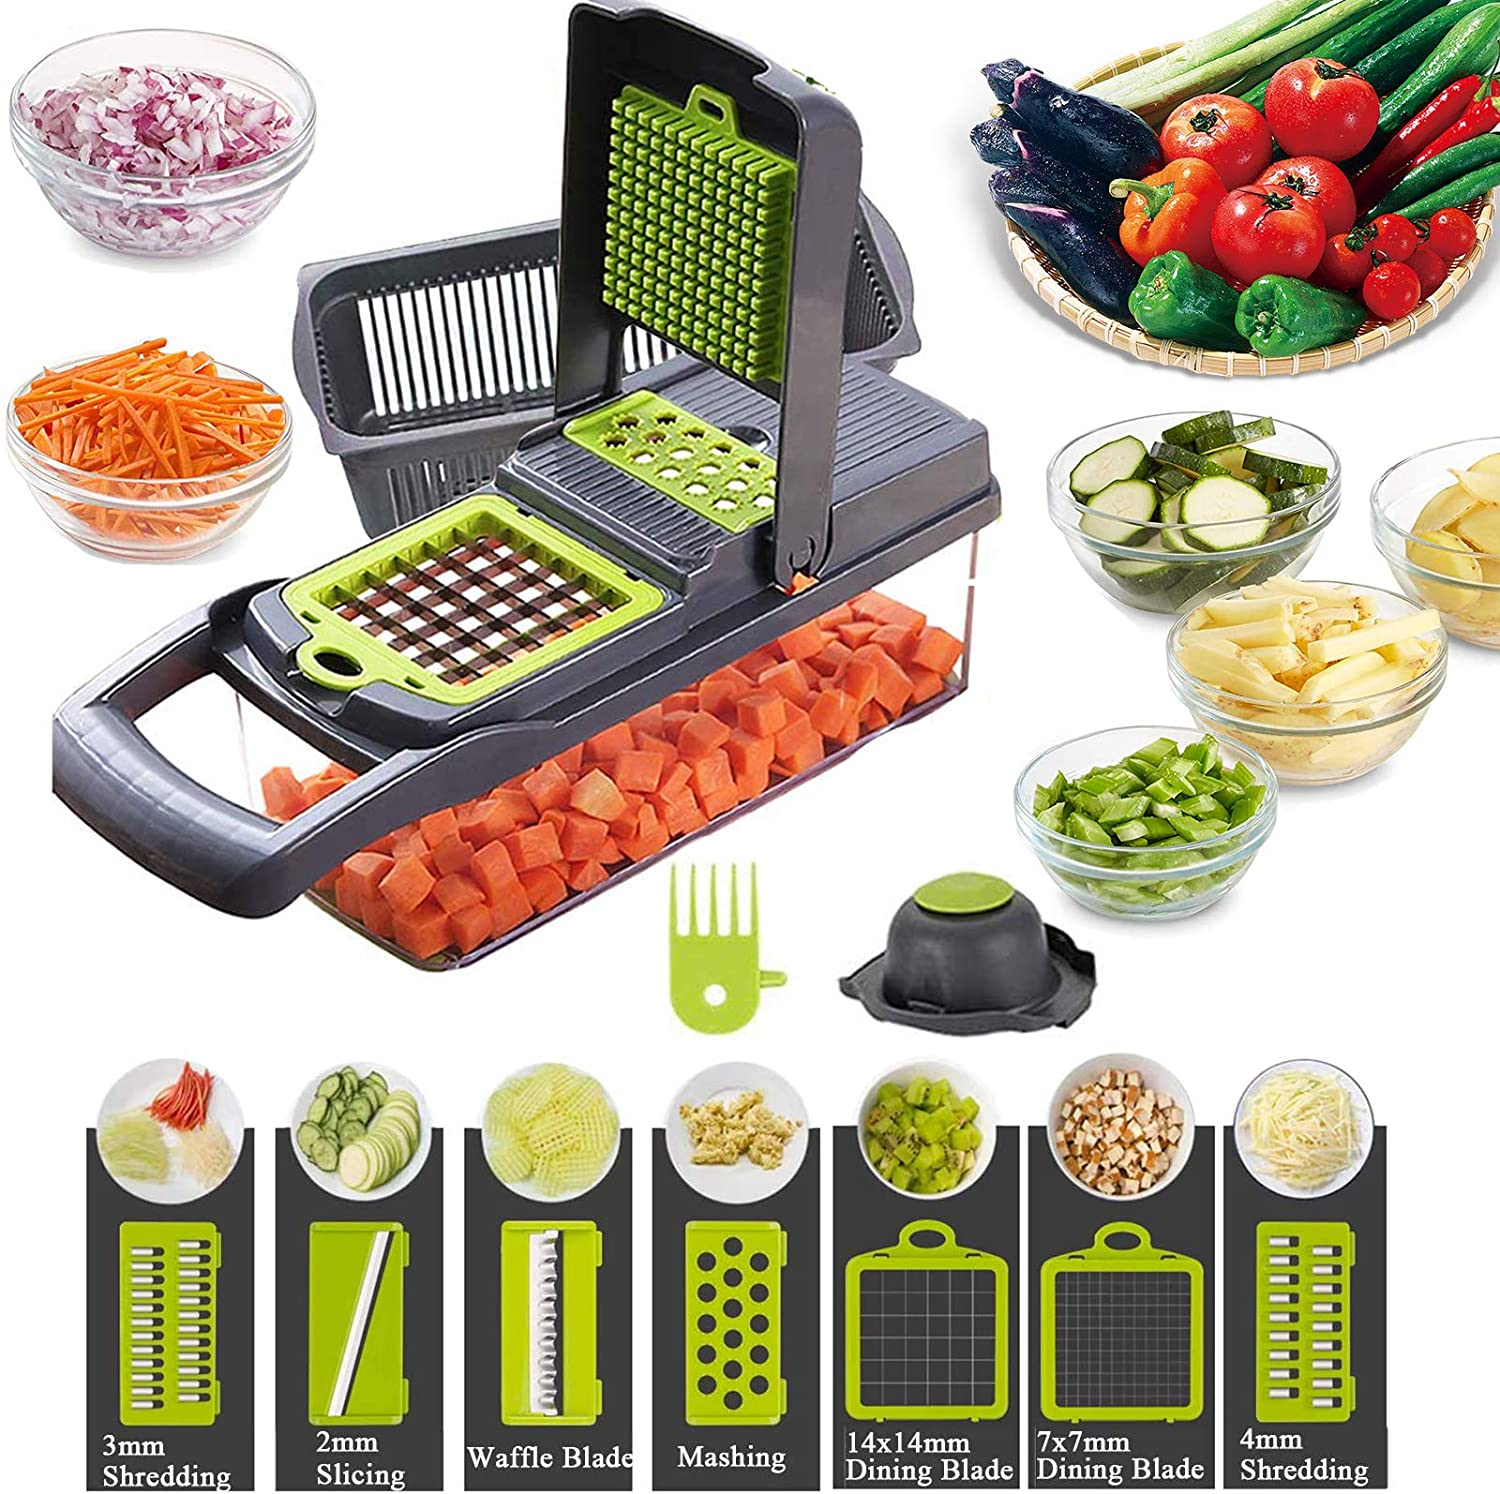 Vegetable Shredder, 12-In-1, The Third Generation Food Shredding (Slicing) Machine for Cutting Vegetables, Cheese, Fruits, Celery, Potatoes, Carrots, Fruit Salads (Gray)